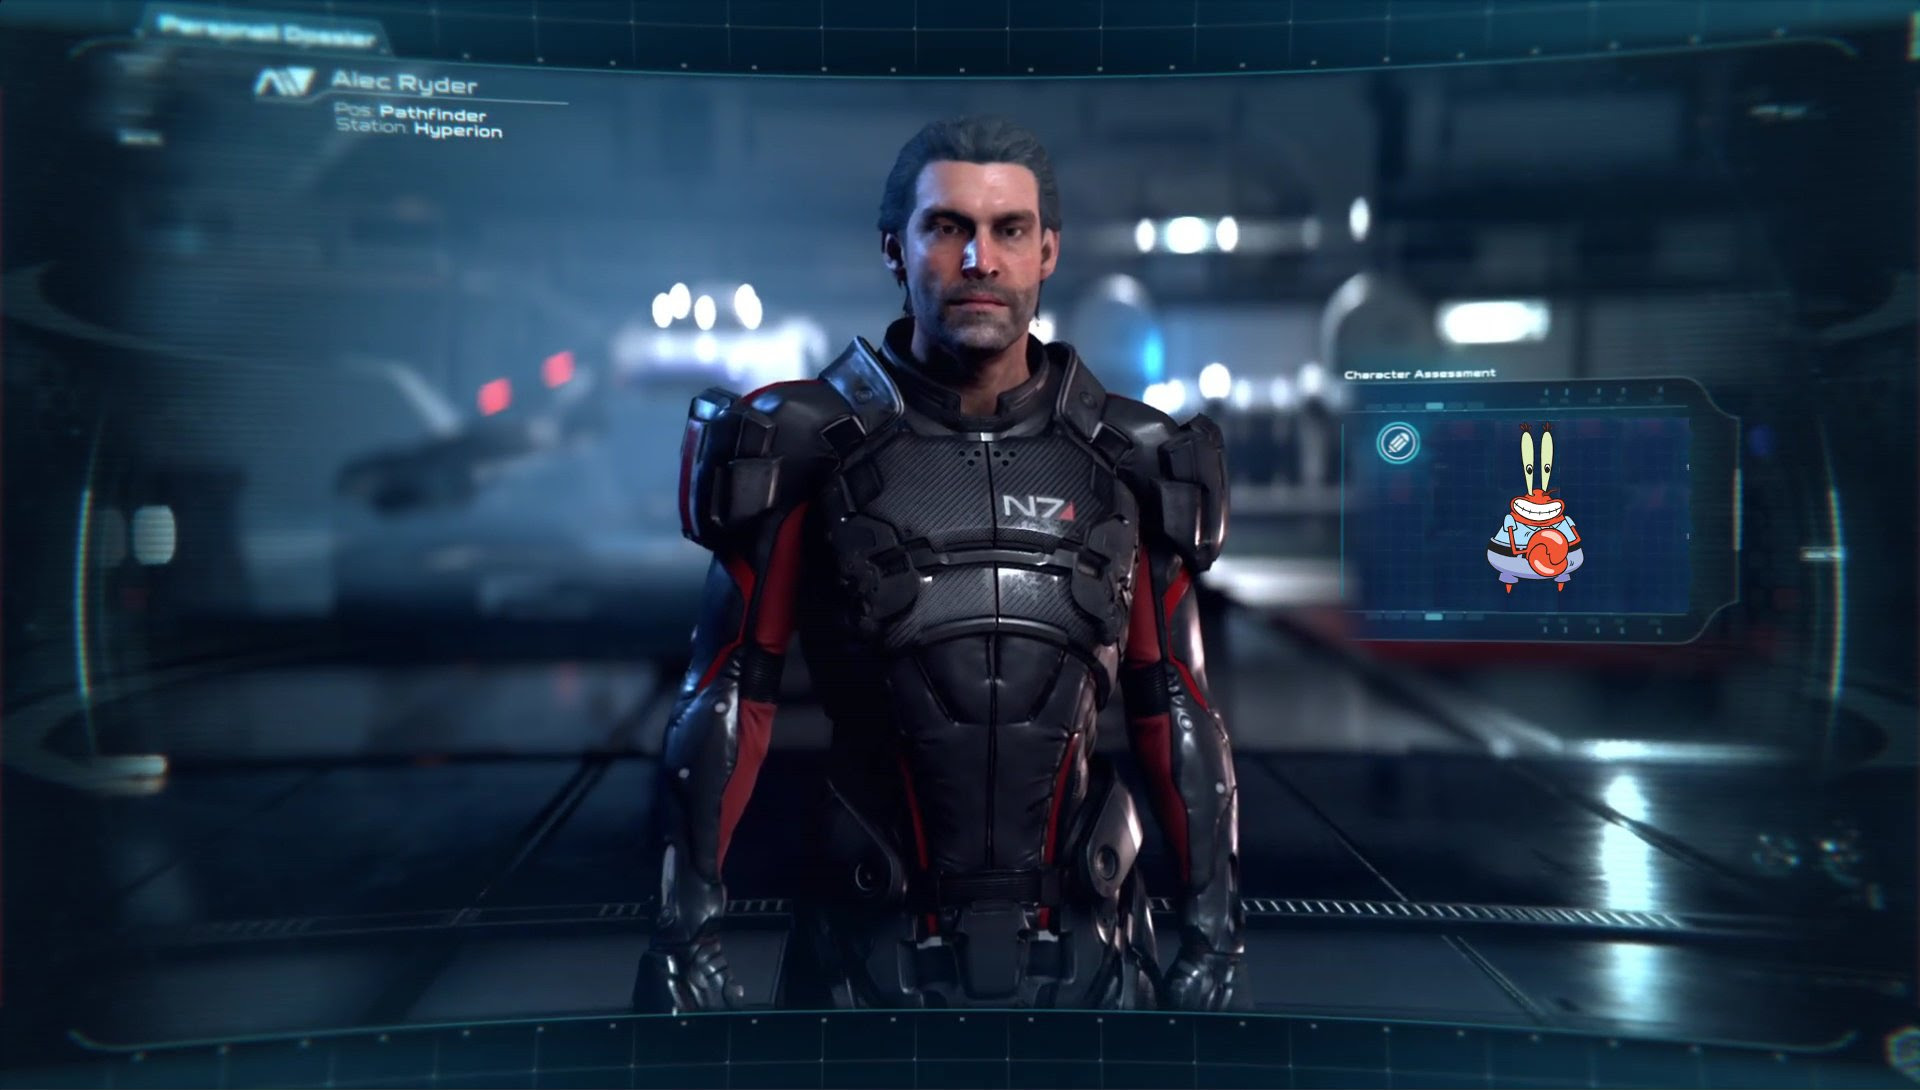 Mass Effect: Andromeda is now 33% off for PS4 and Xbox One screenshot